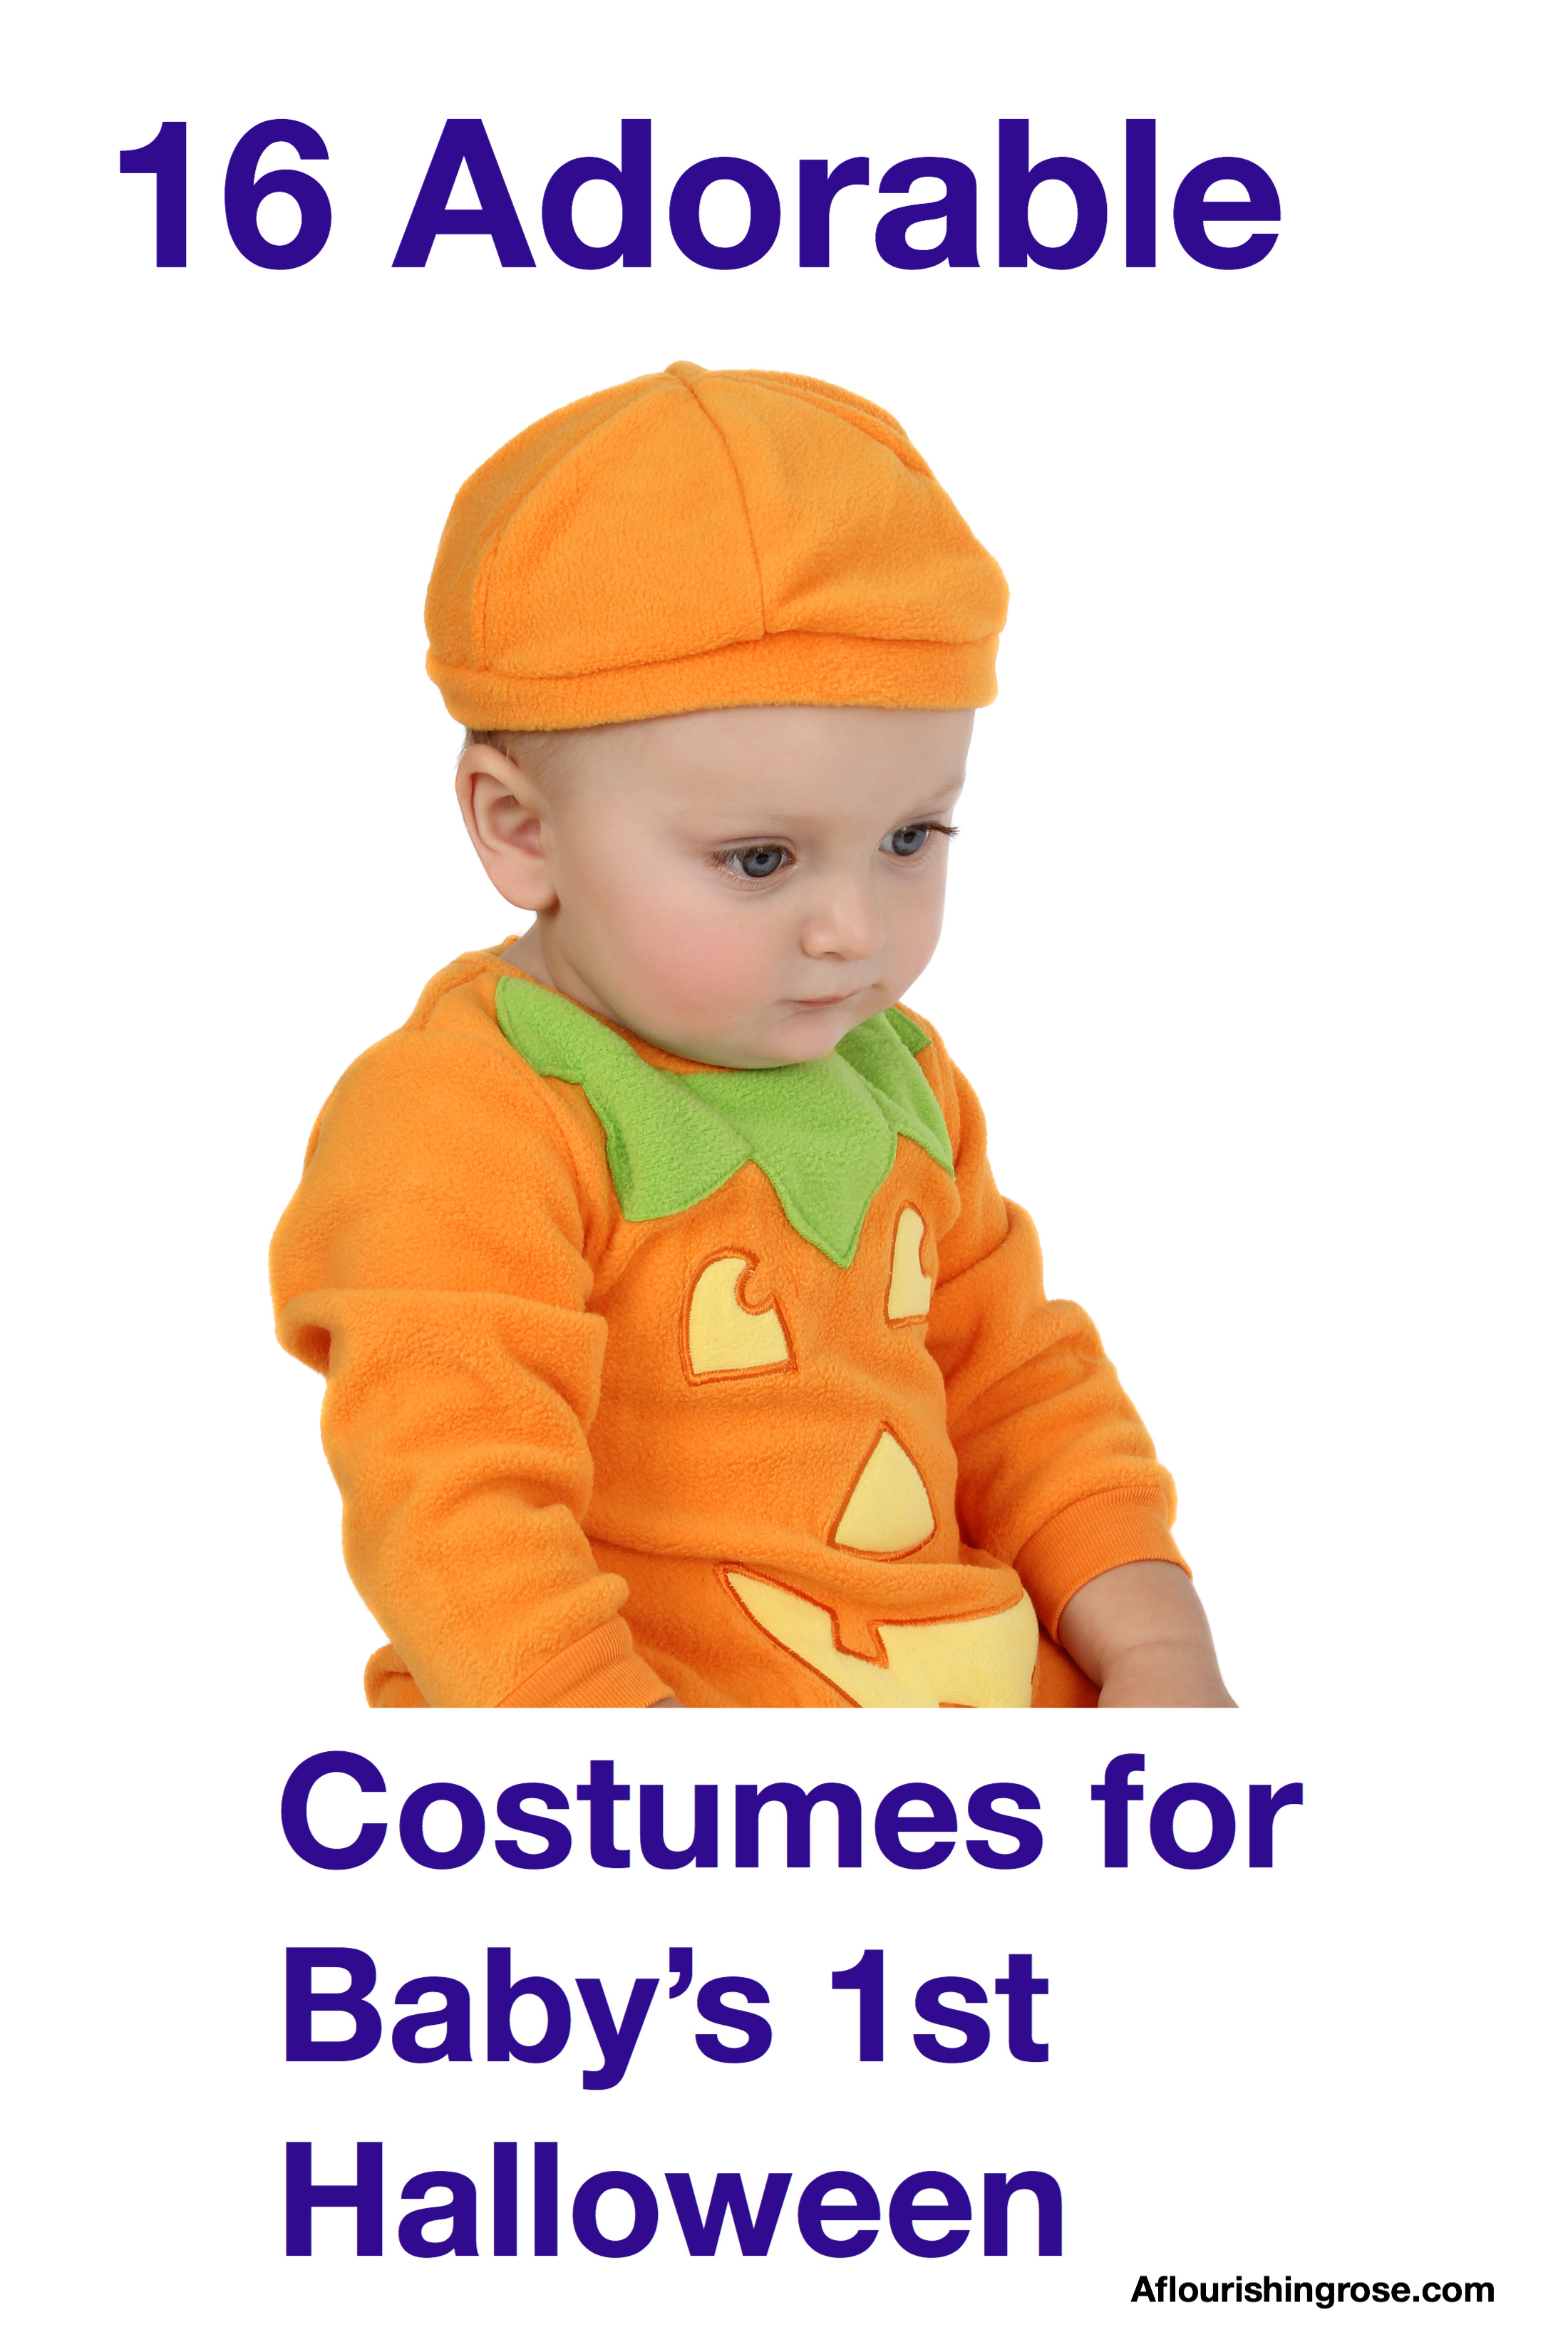 16 Adorable Costumes for Baby's 1st Halloween pin